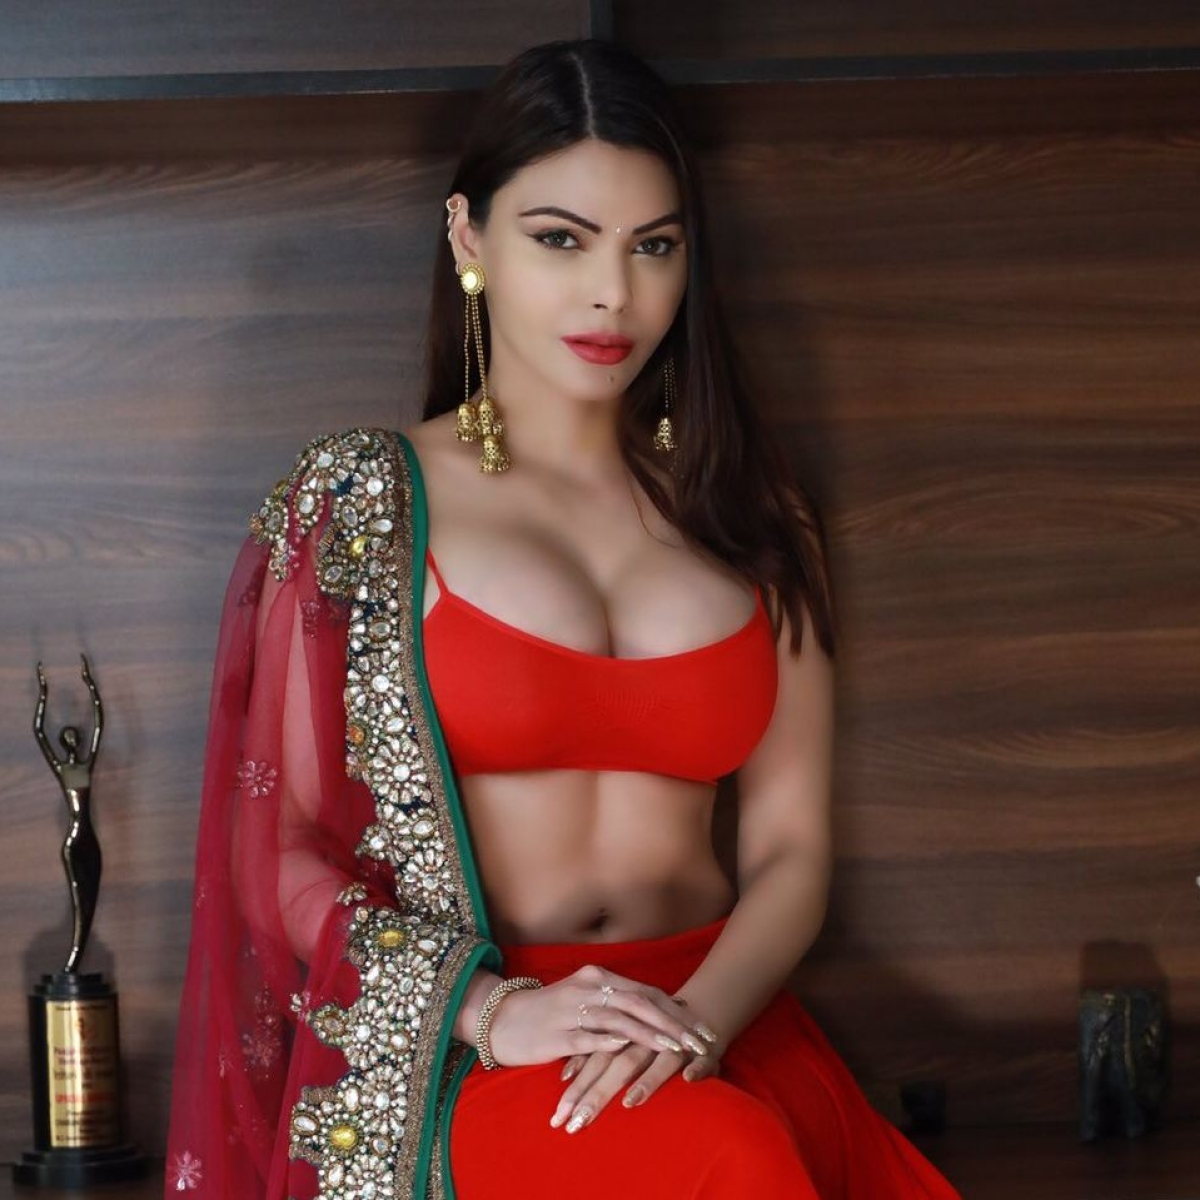 Sherlyn Chopra obscene videos case: Actress moves Bombay HC seeking pre-arrest bail